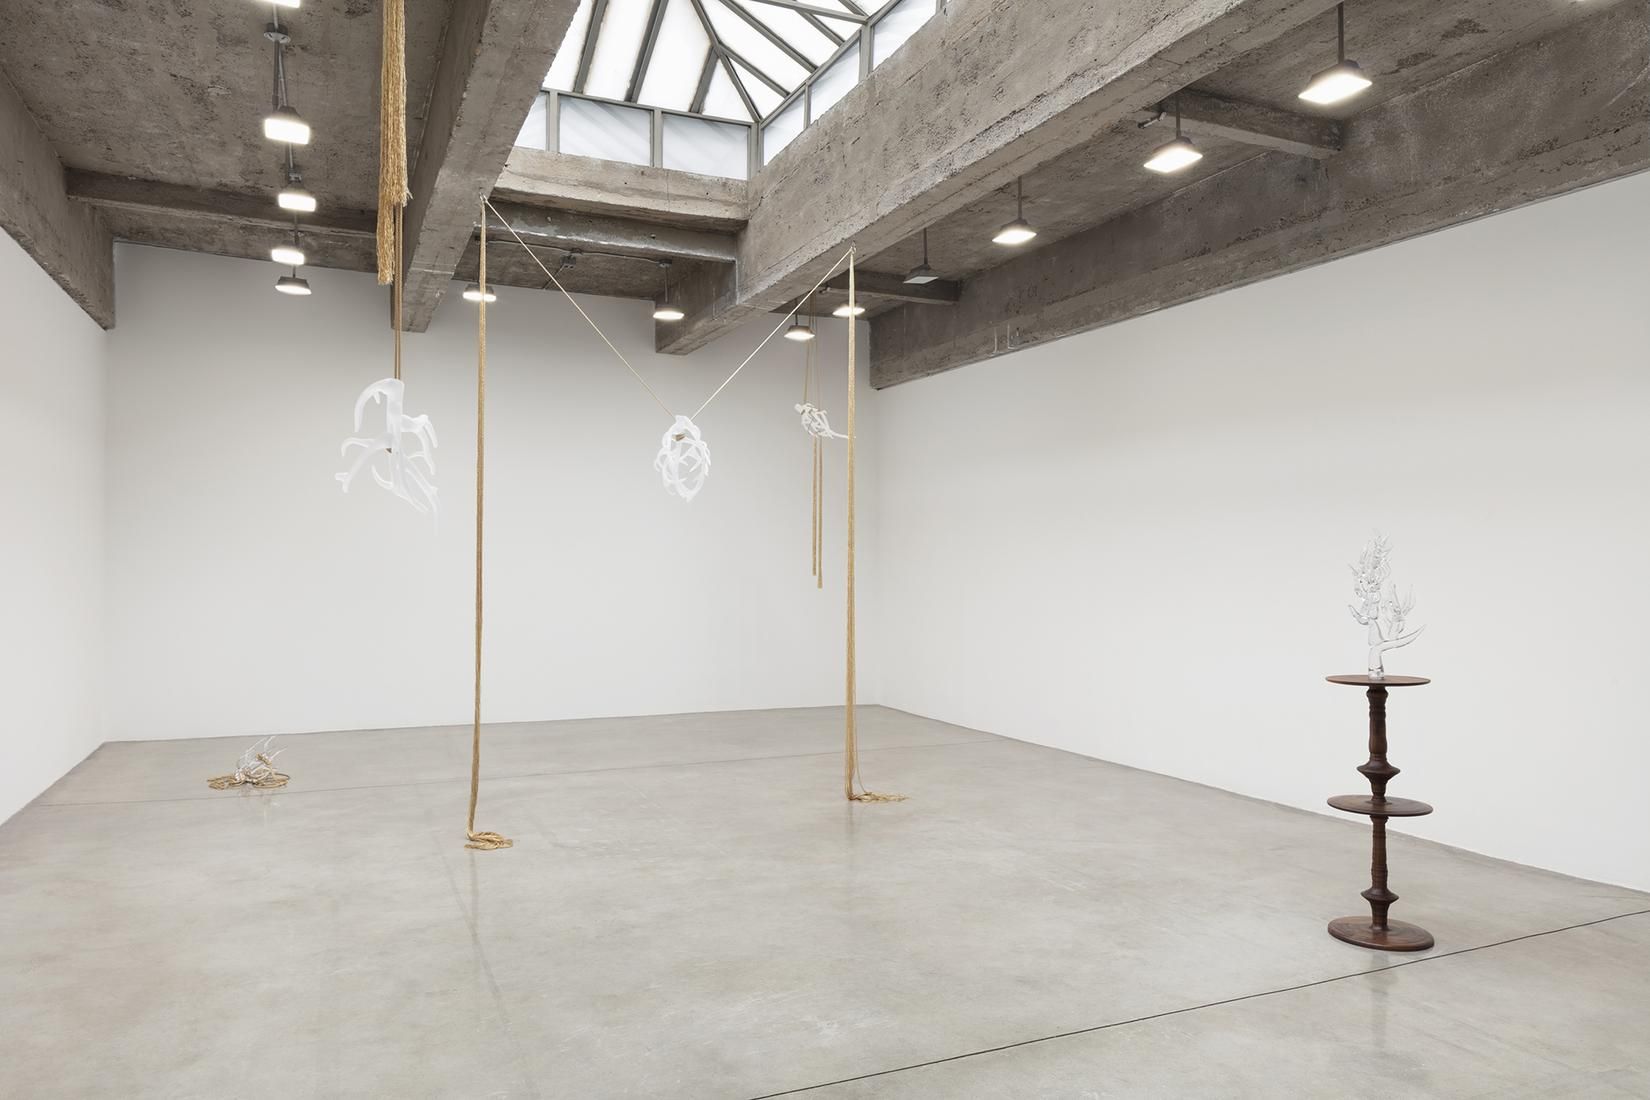 This is an installation image of Kelly Akashi exhi...